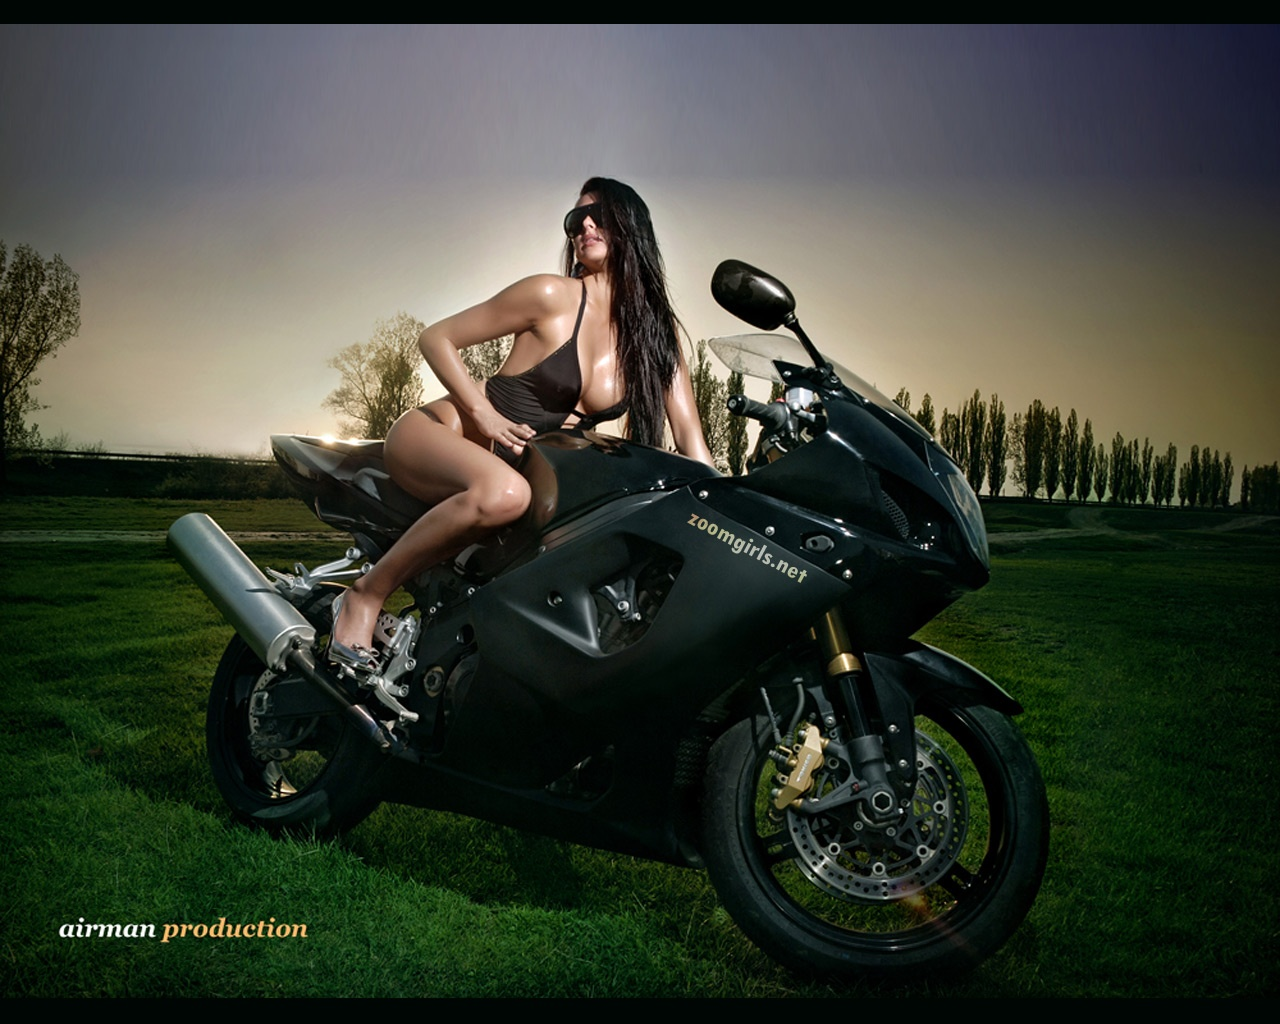 Sexy bike rider wallpaper 1280x1024 nude sexy hd and wide wallpapers 1280x1024